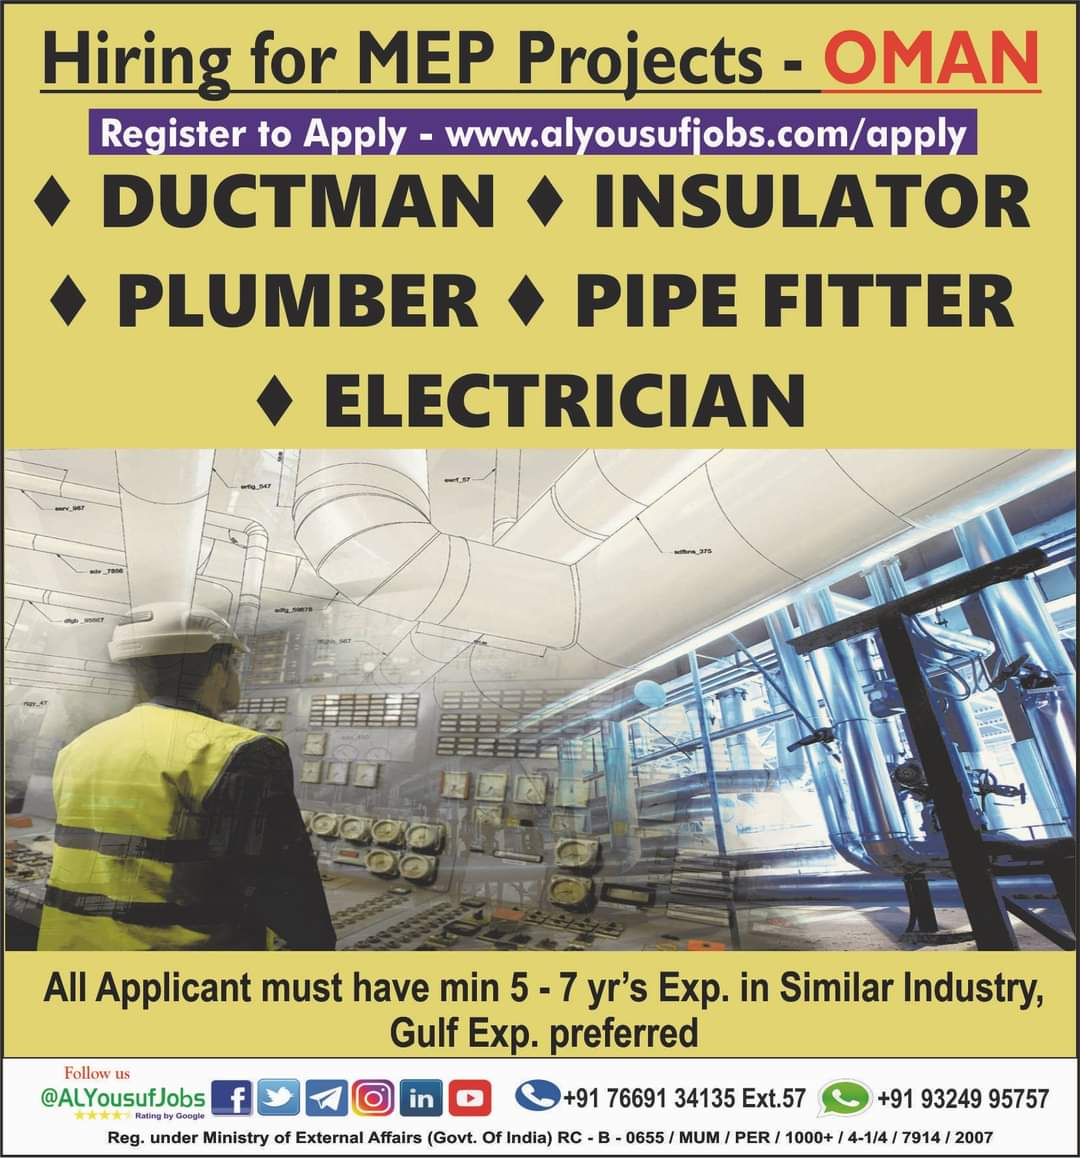 HIRING FOR MEP PROJECTS – OMAN